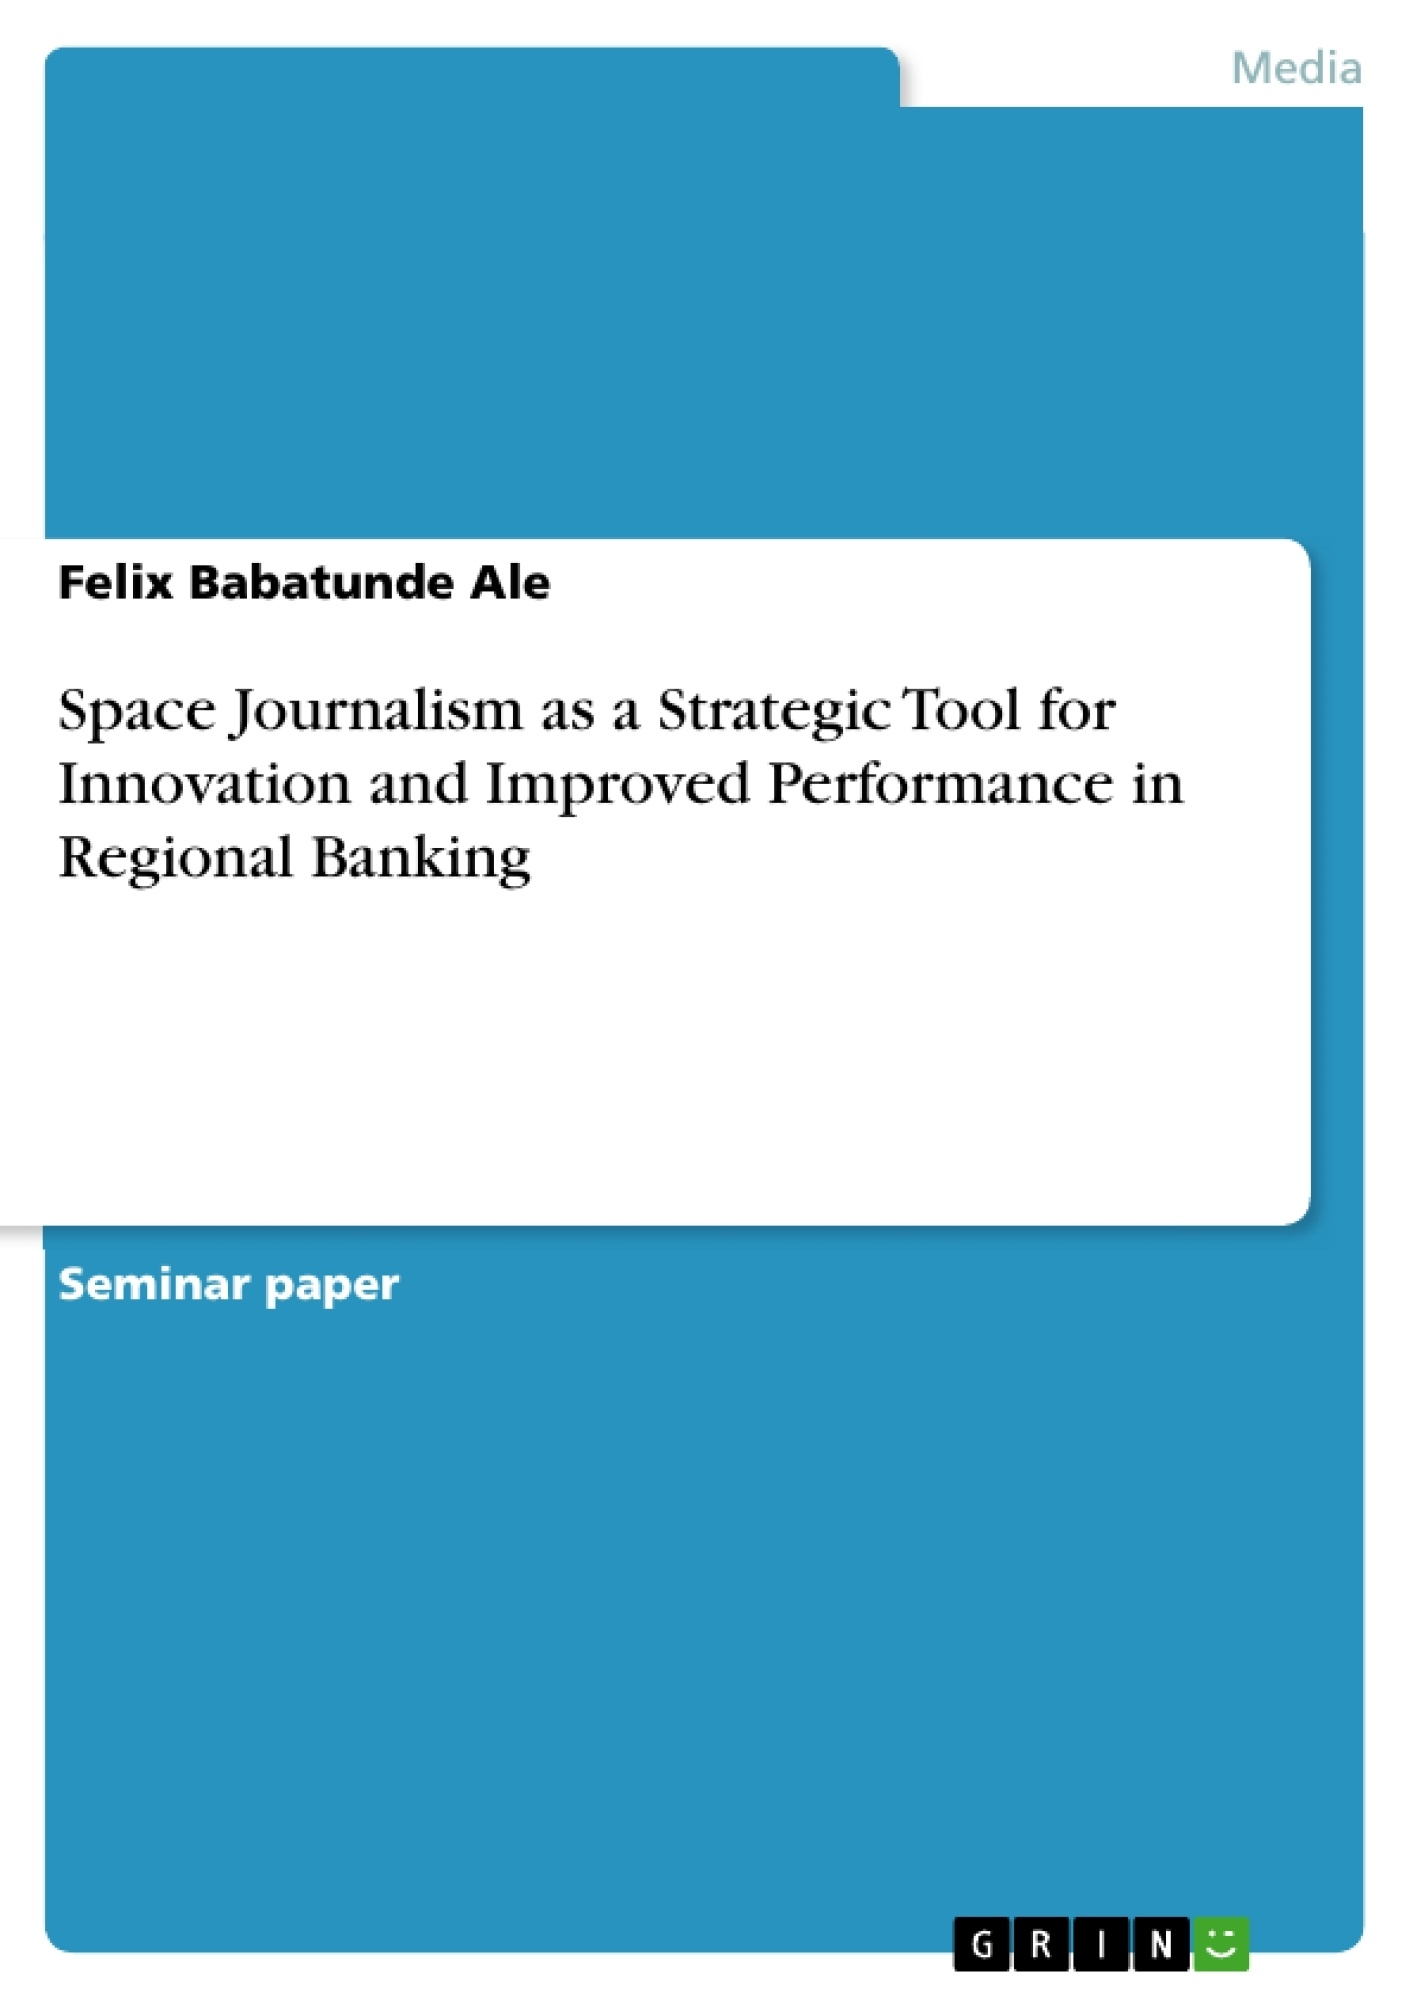 Title: Space Journalism as a Strategic Tool for Innovation and Improved Performance in Regional Banking